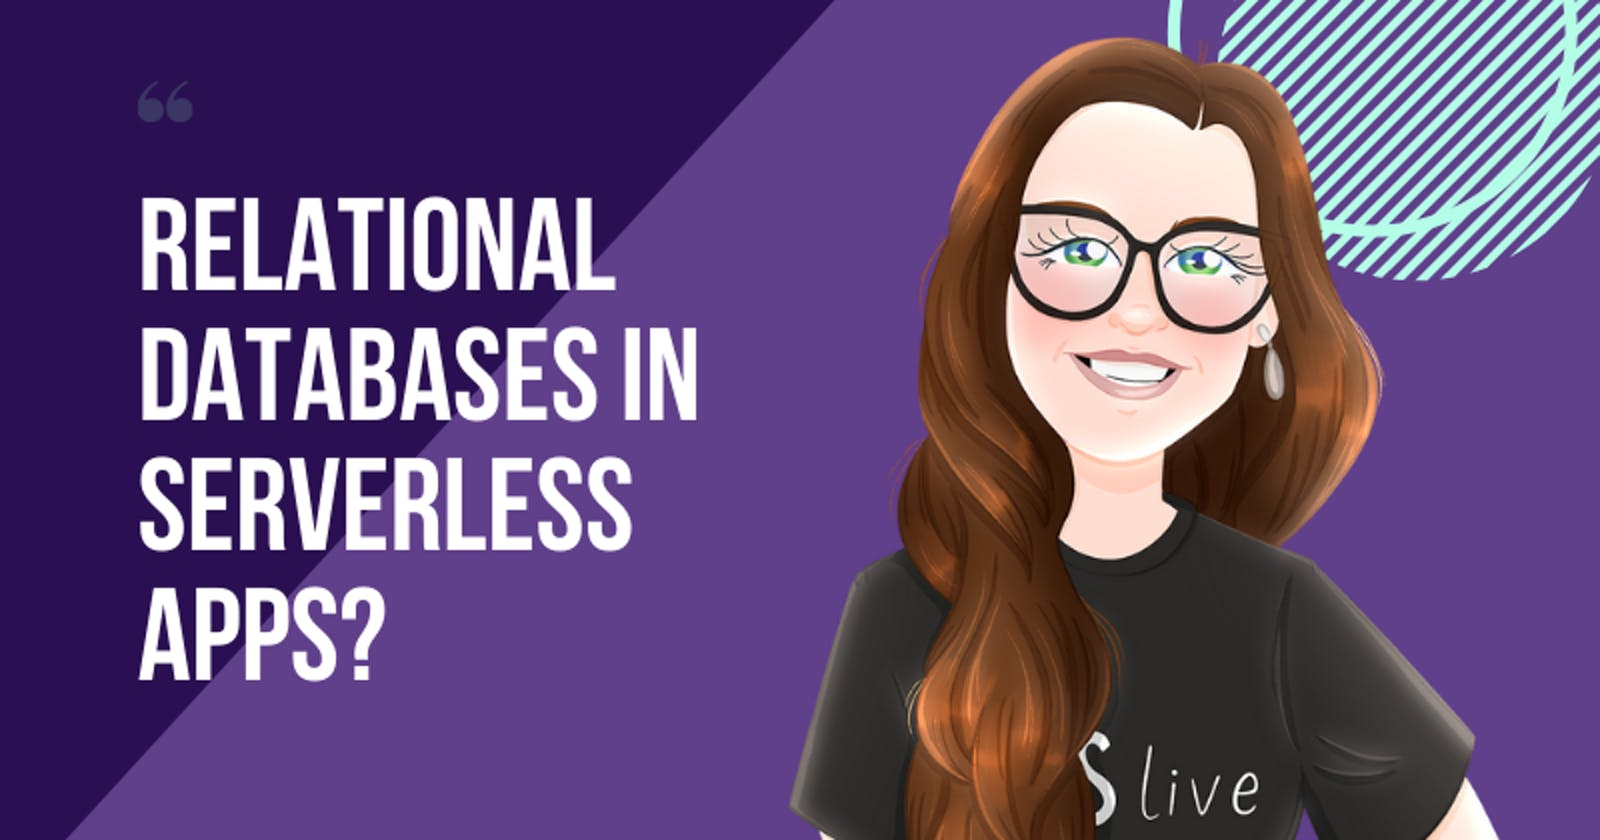 Relational databases for serverless, can we use them?